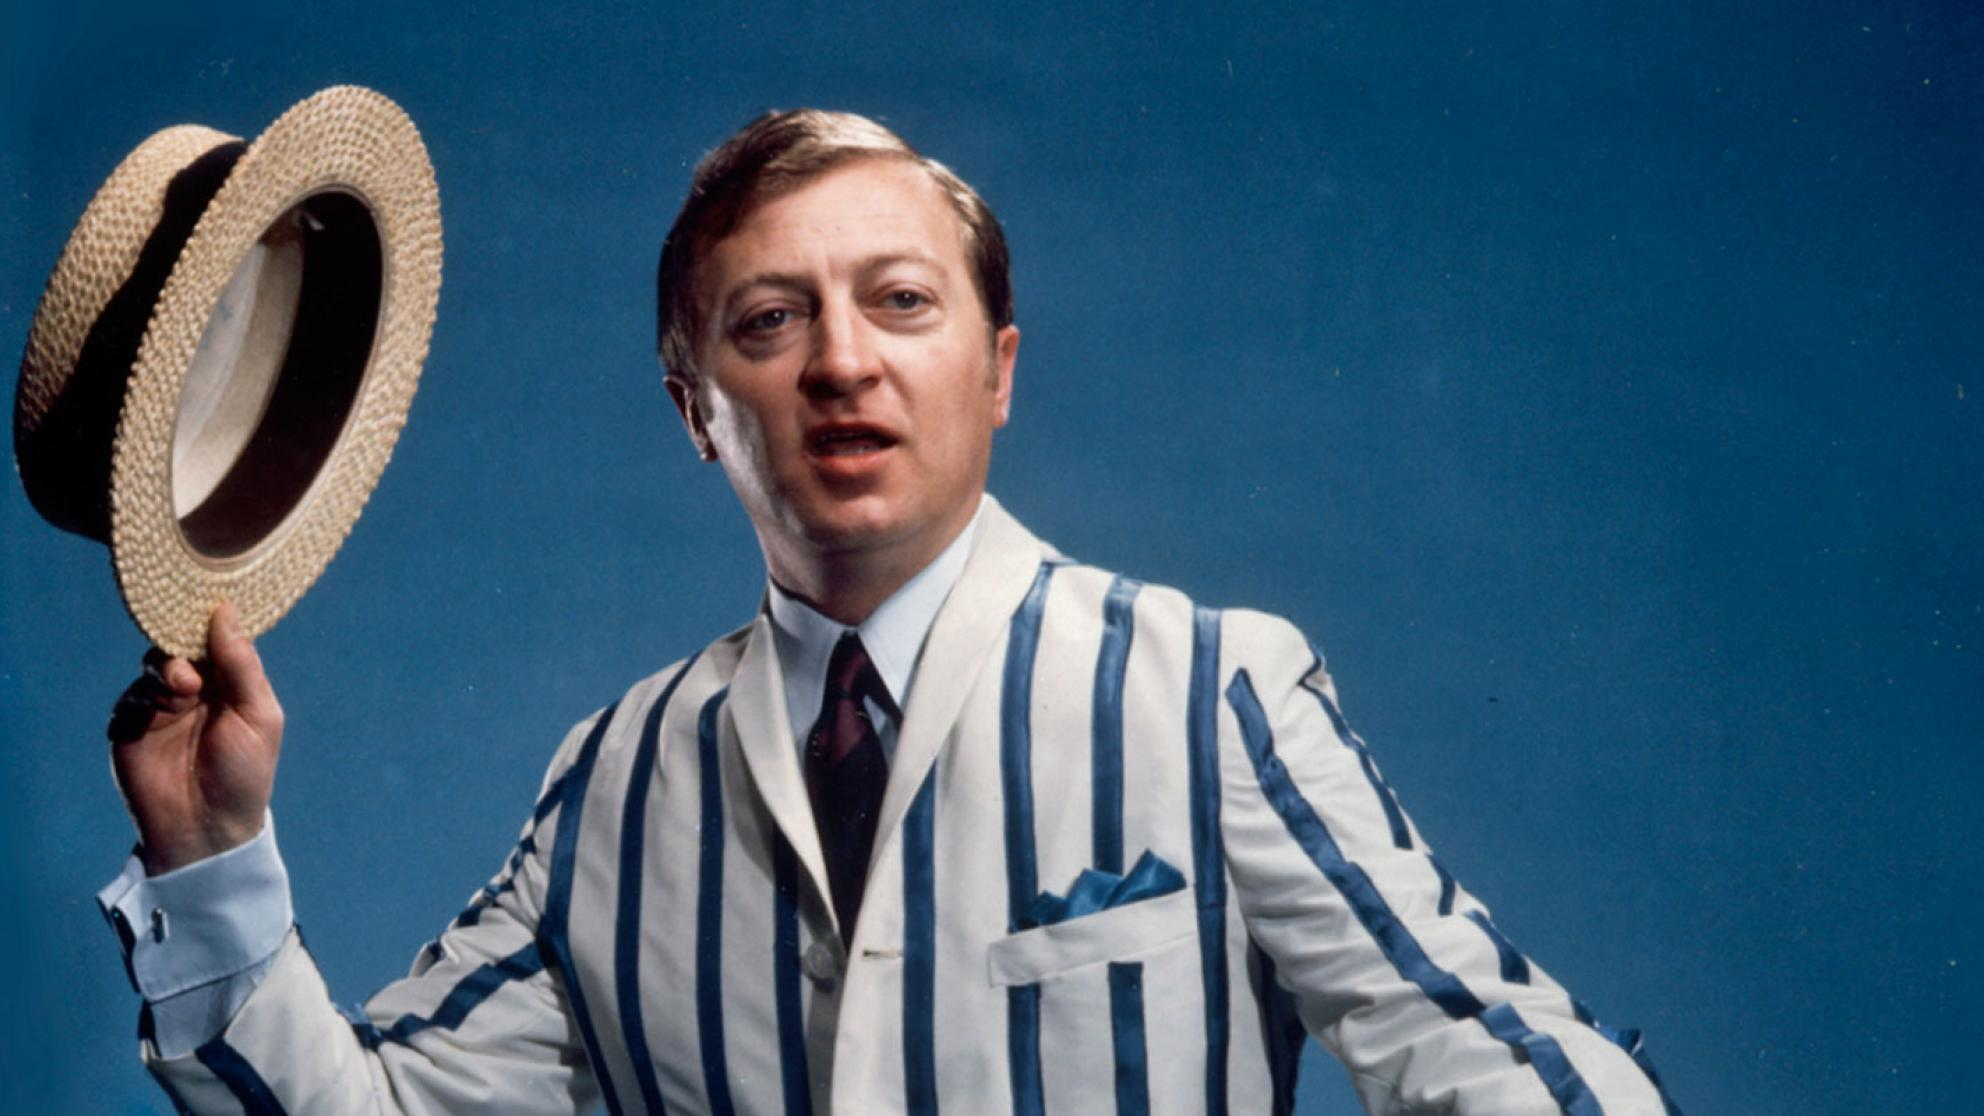 Graham Kennedy wearing a striped jacket and holding a straw boater hat in a promo shot for GTV 9.